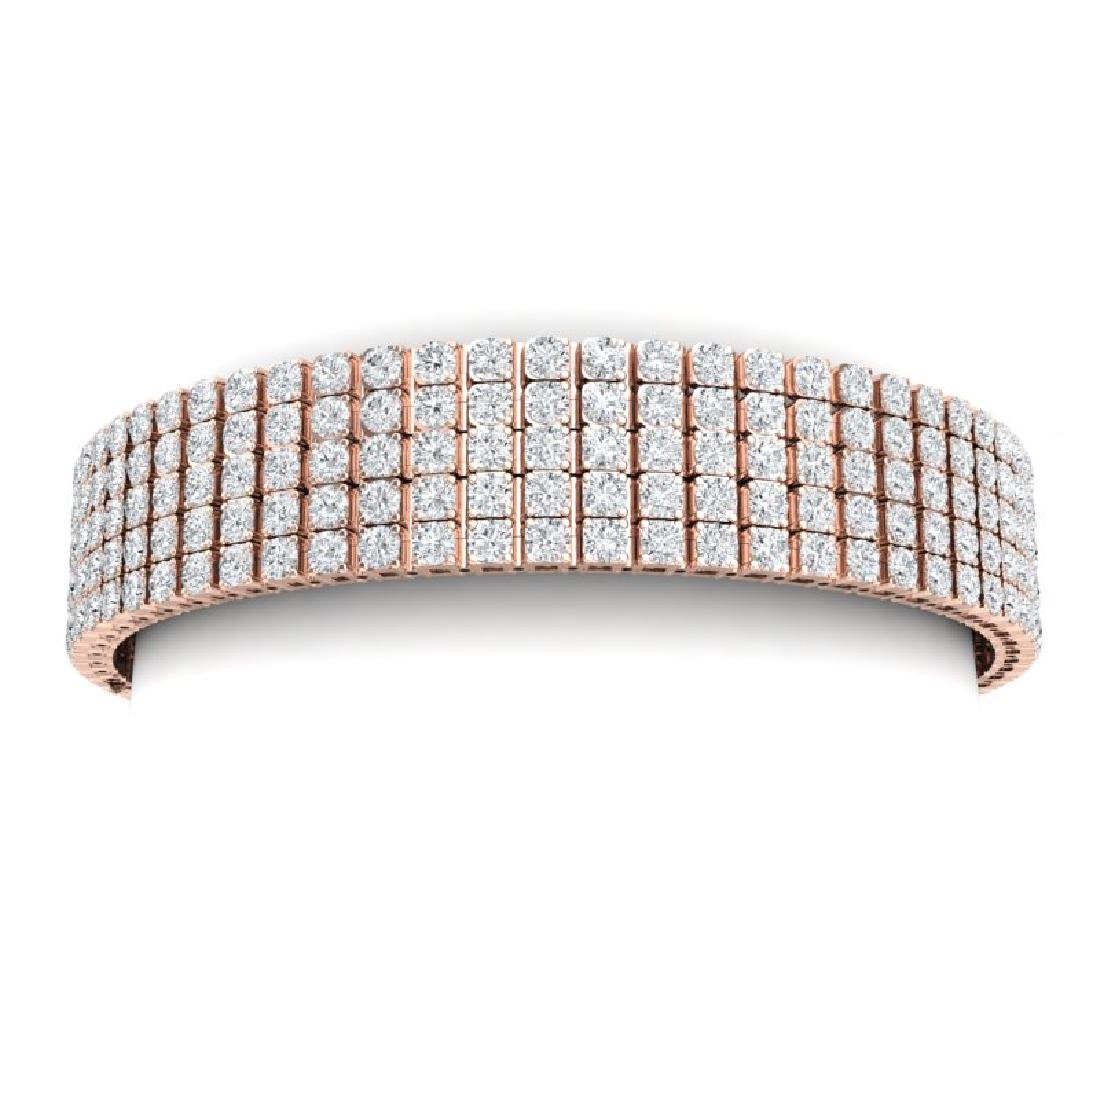 20 CTW Certified VS/SI Diamond Bracelet 18K Rose Gold - 2